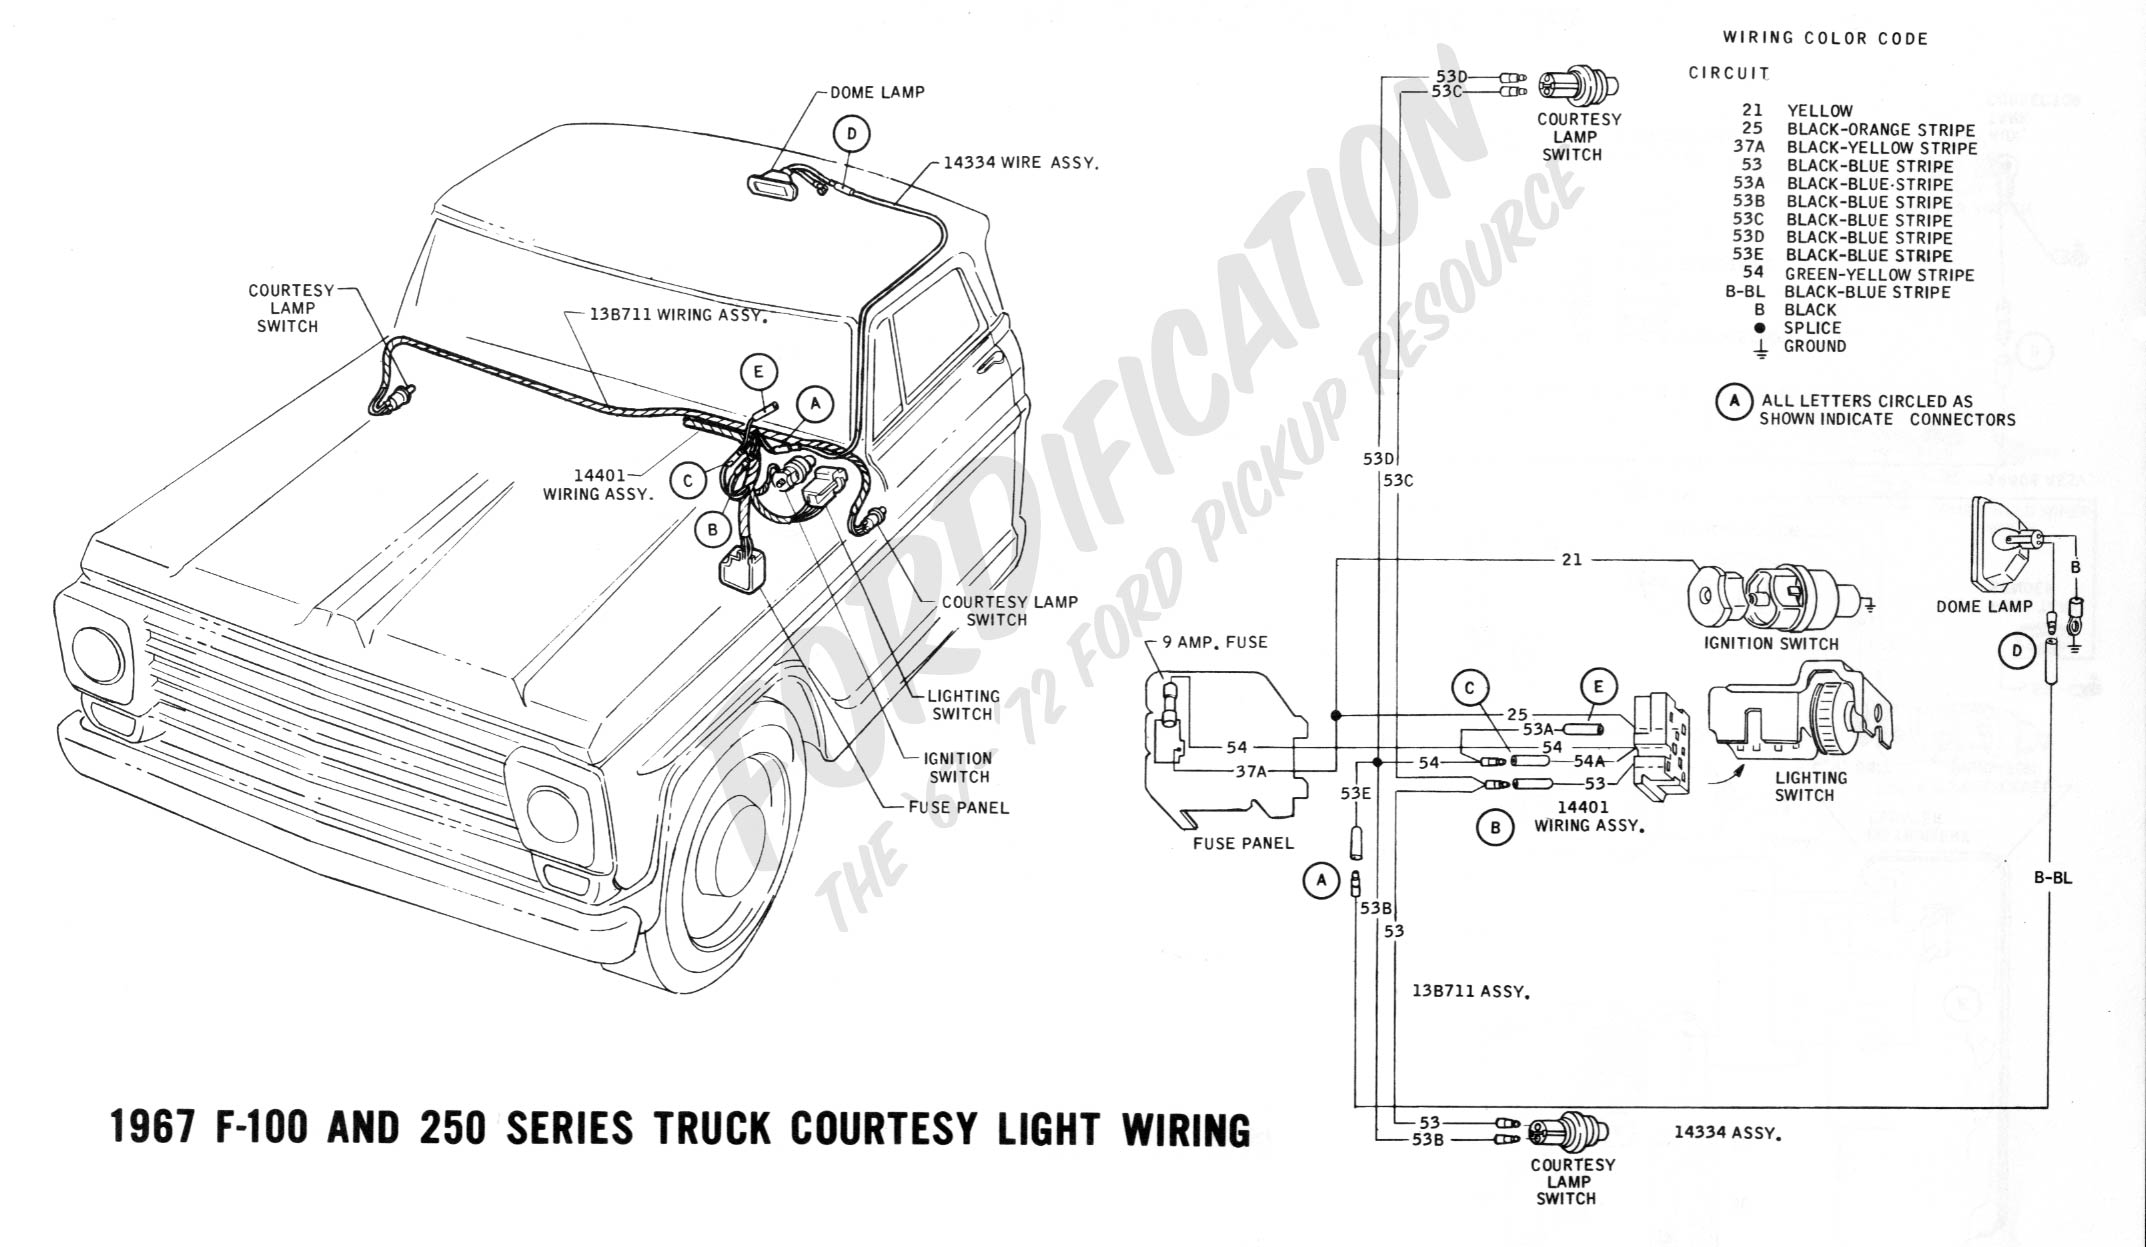 wiring 1967courtesylight 1979 ford f150 ignition switch wiring diagram wiring diagram and GM Windshield Wiper Wiring Diagram at fashall.co